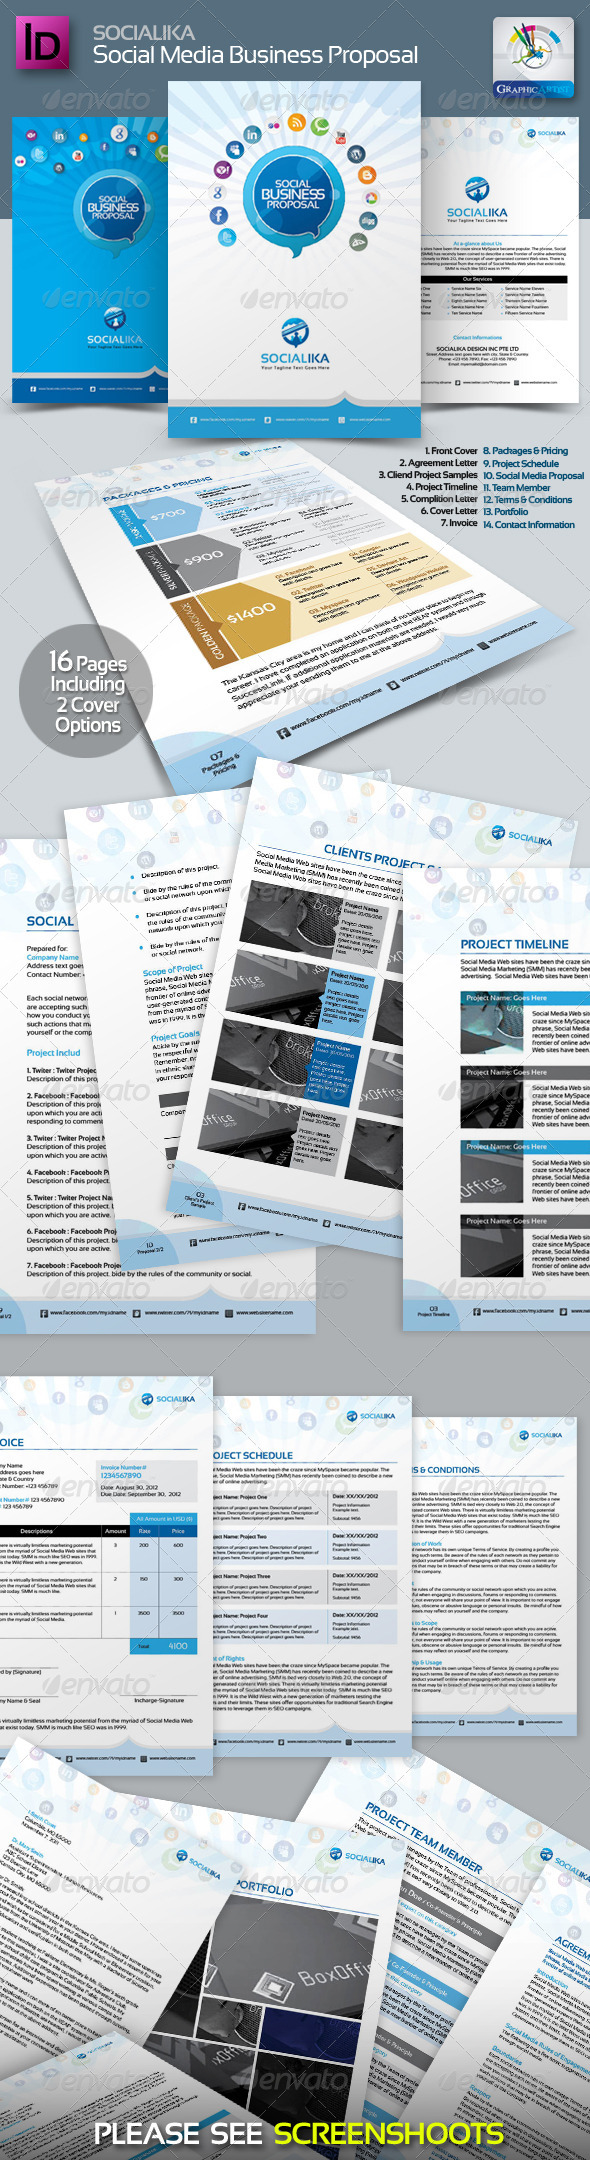 Socialika Social Media Business Proposal - Proposals & Invoices Stationery